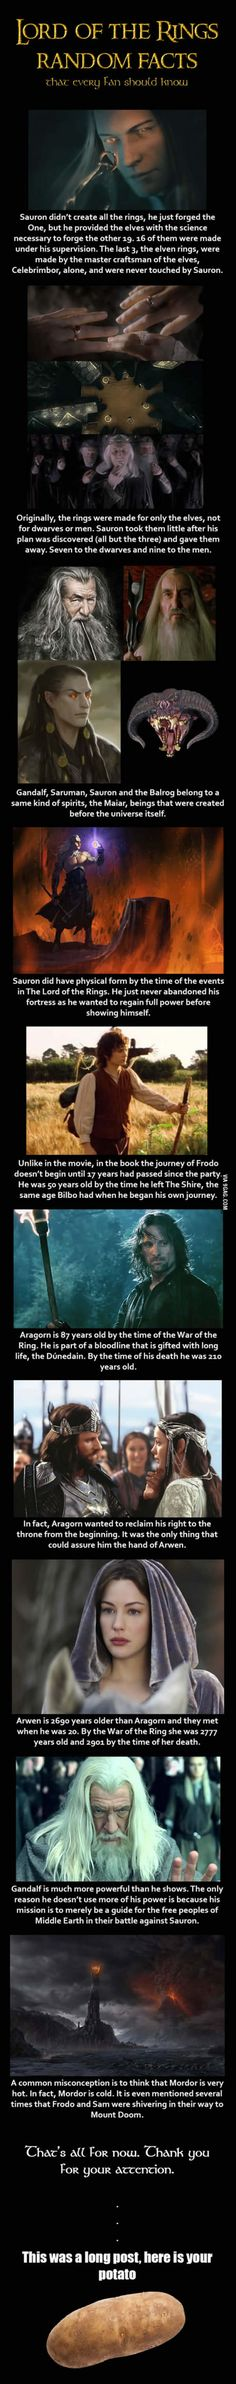 Here are some Lord of the Rings random facts